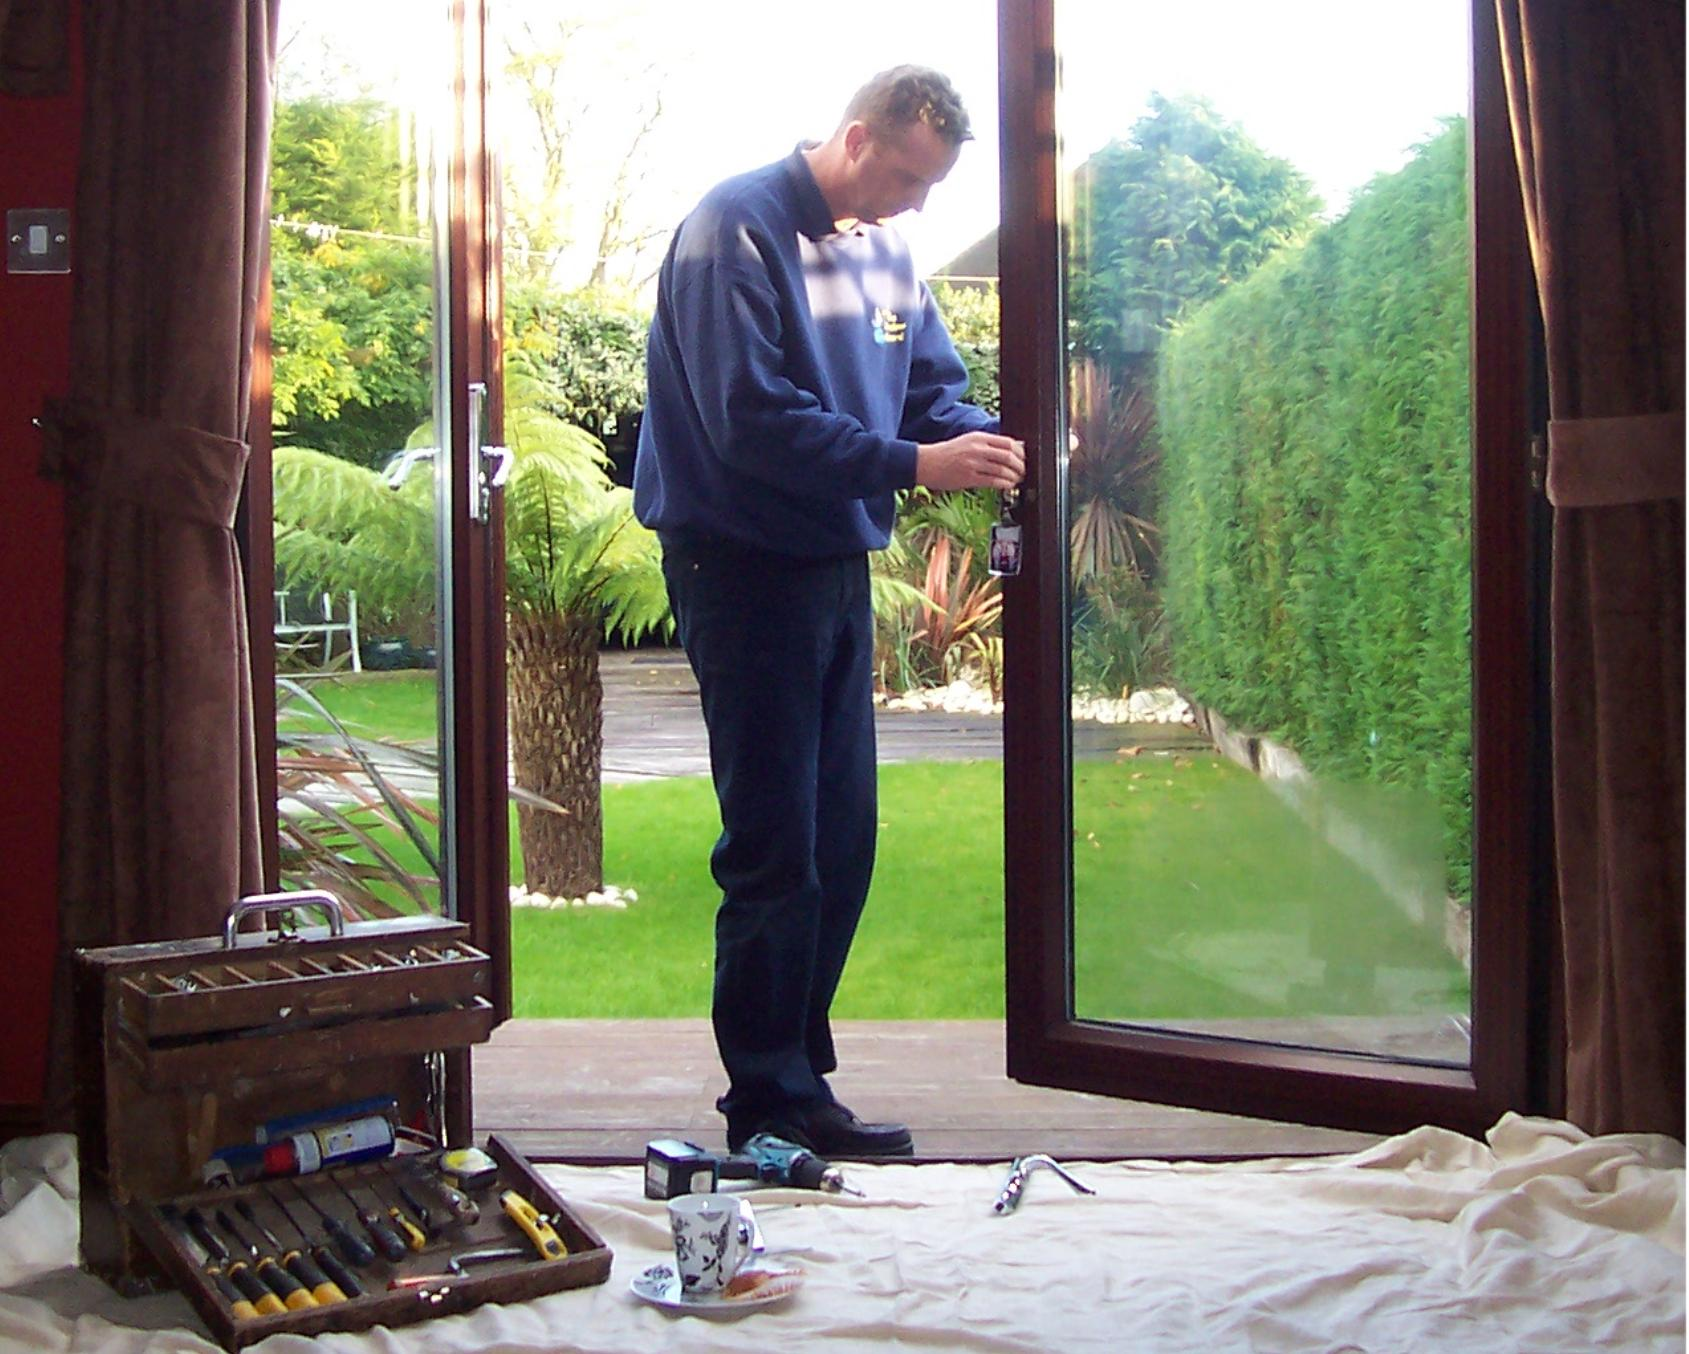 French UPVC Doors repaired and adjusted